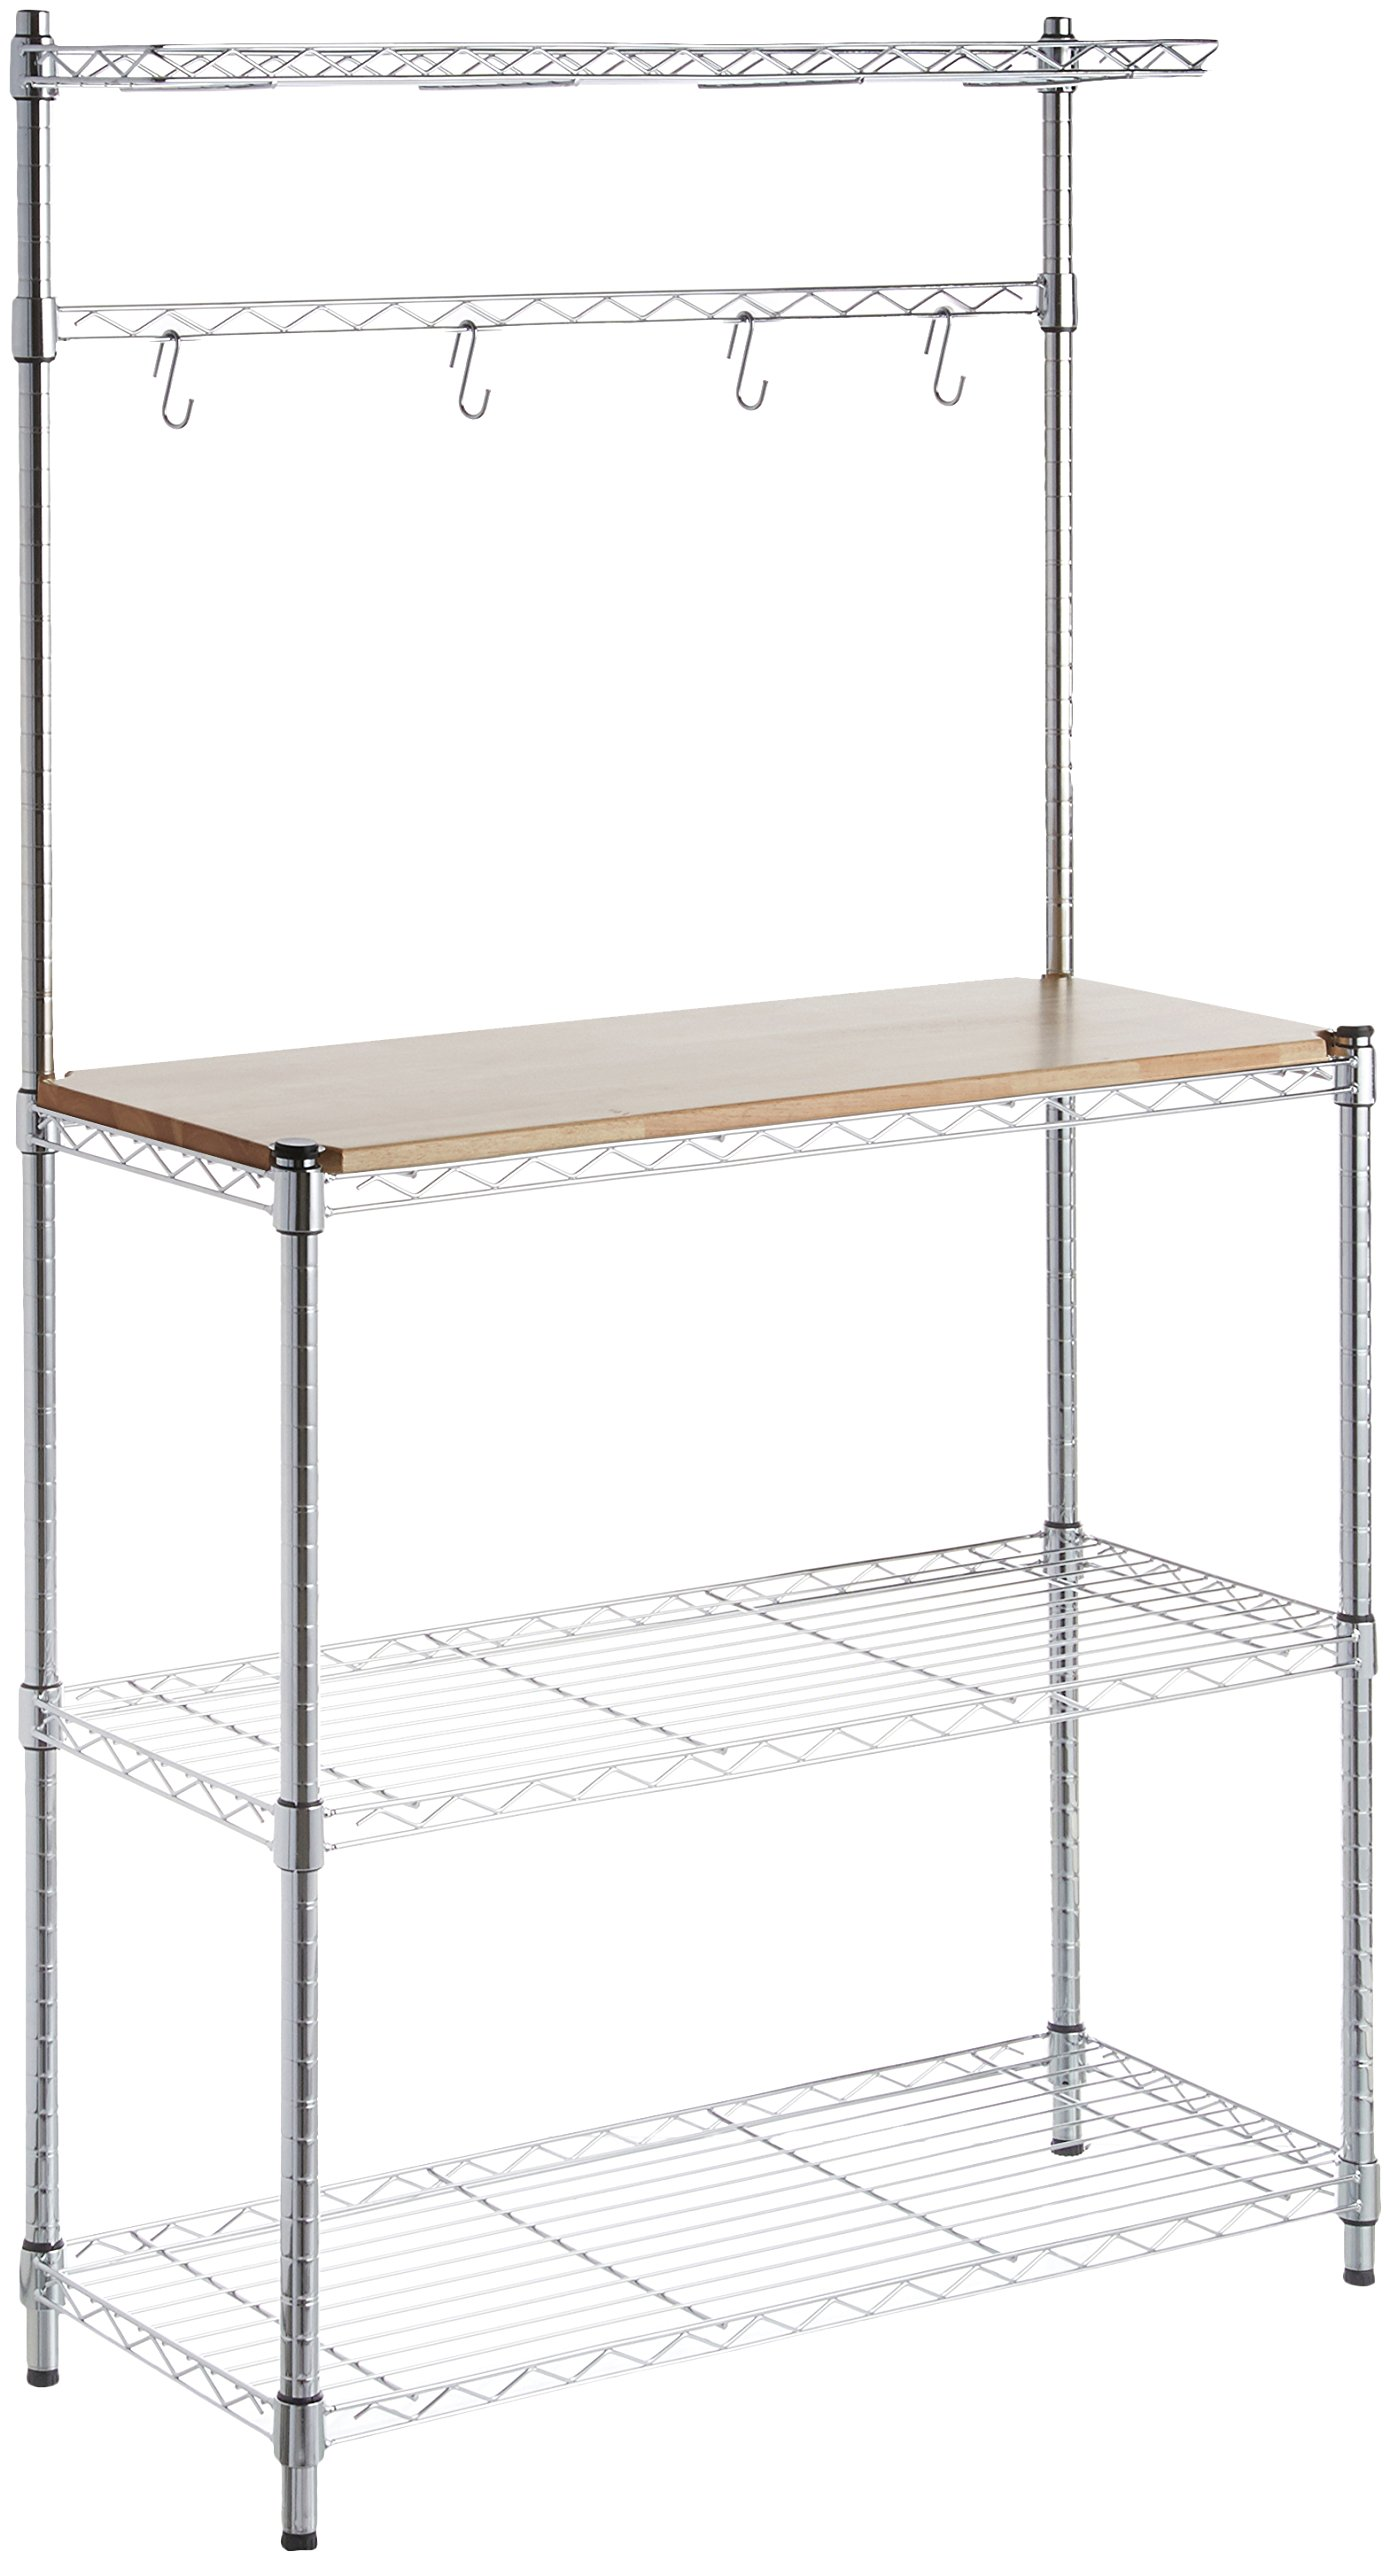 AmazonBasics Kitchen Storage Baker's Rack with Wood Table, Chrome/Wood – 63.4″ Height